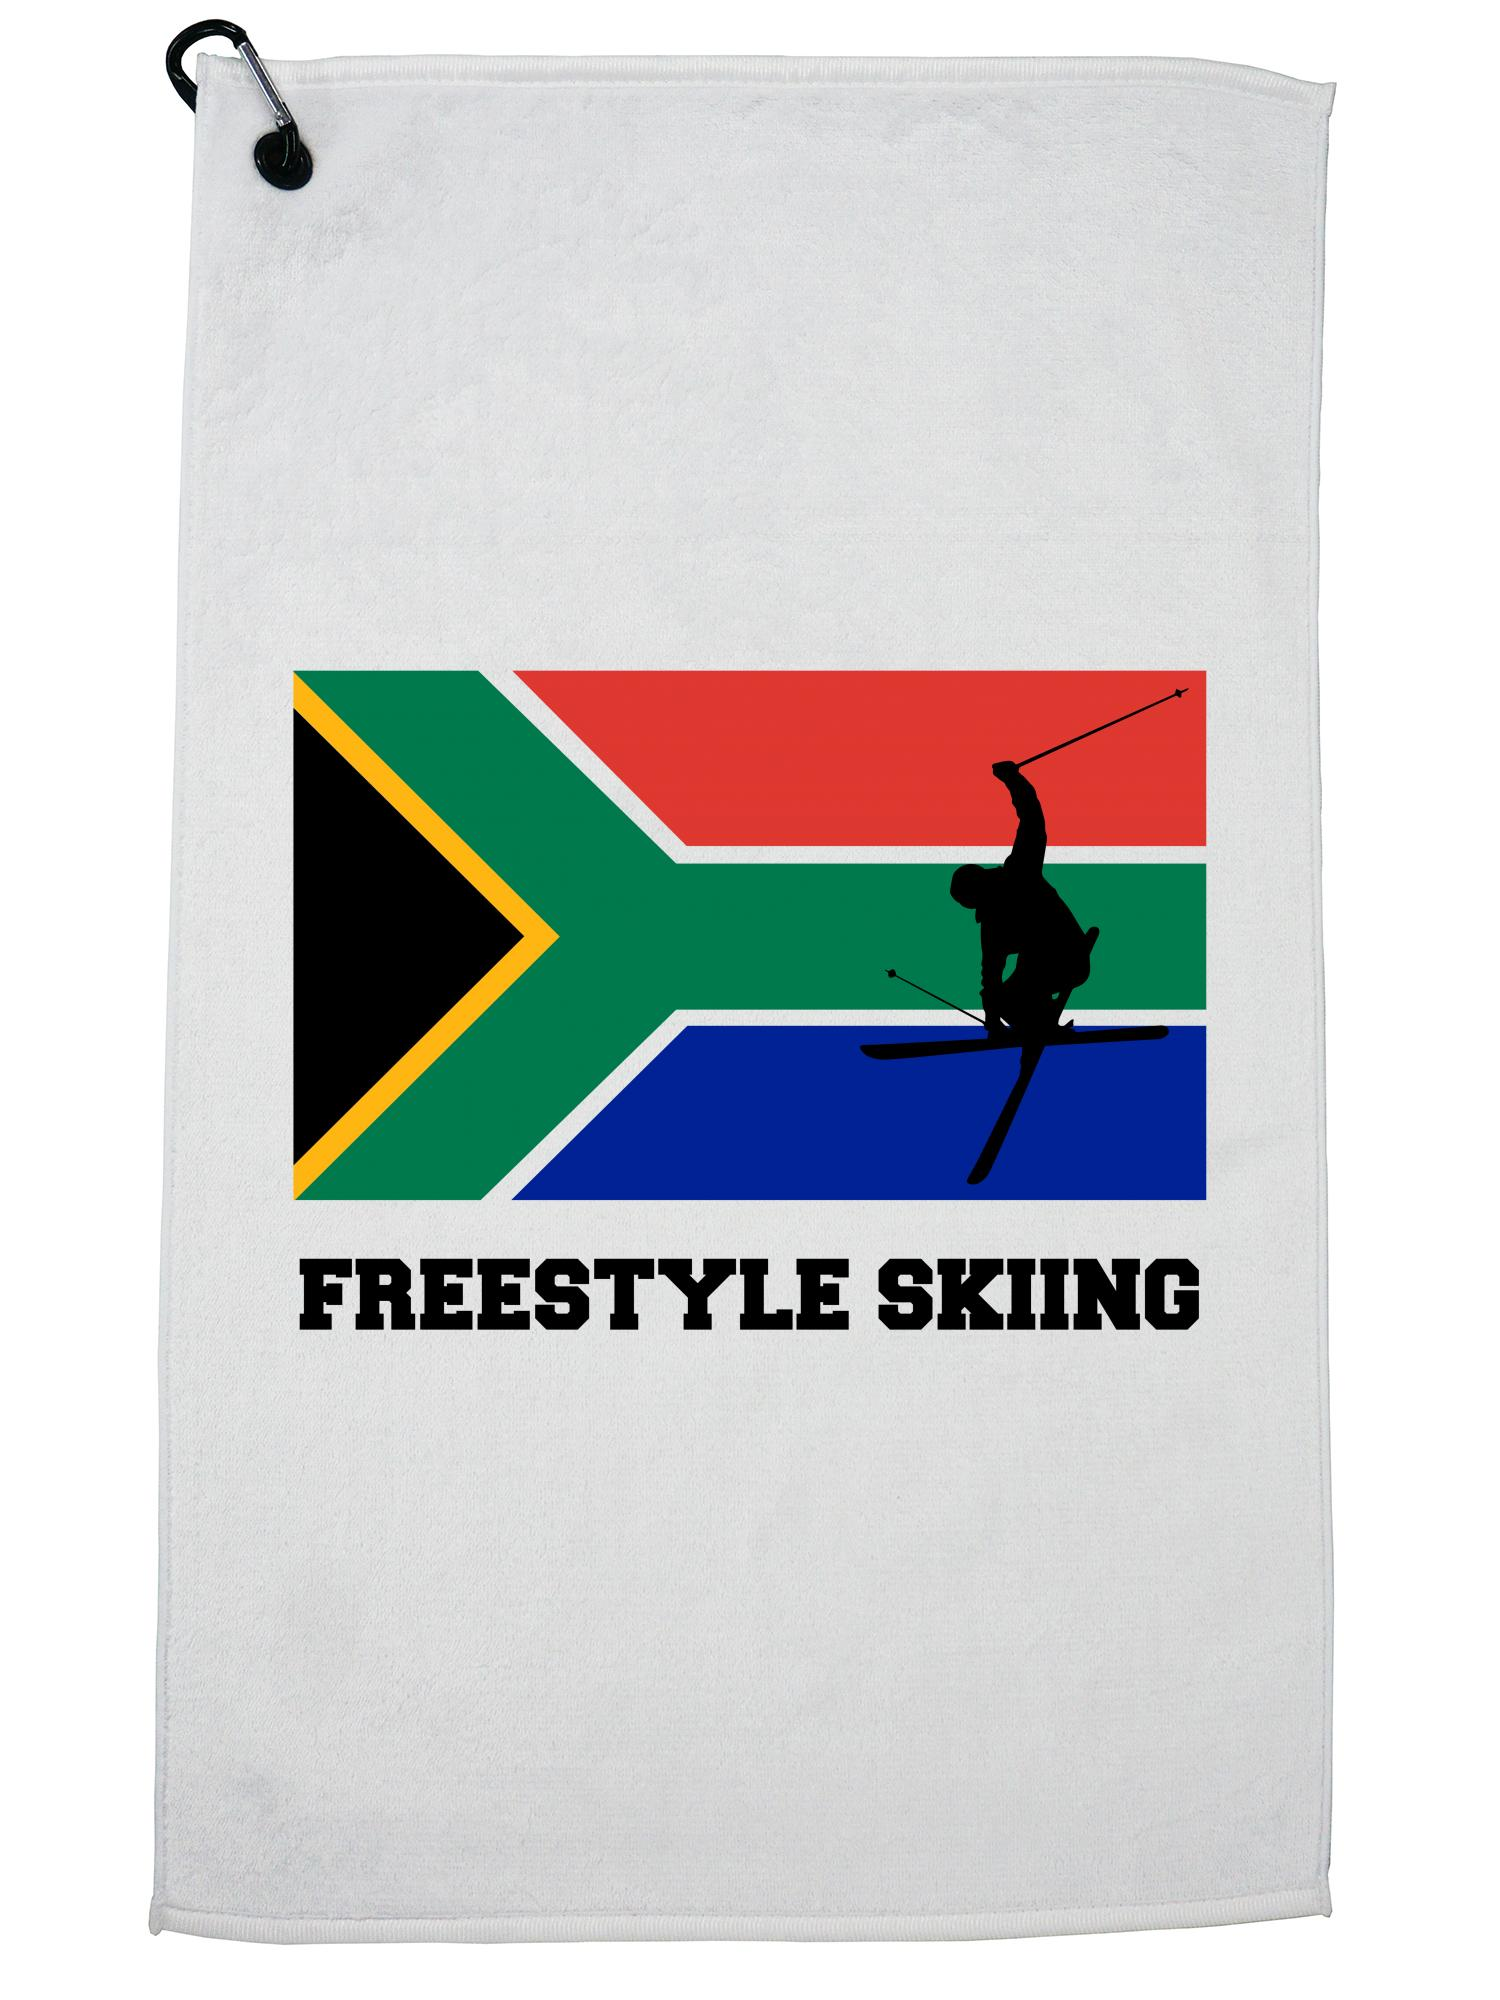 South Africa Olympic Freestyle Skiing Flag Silhouette Golf Towel with Carabiner Clip by Hollywood Thread